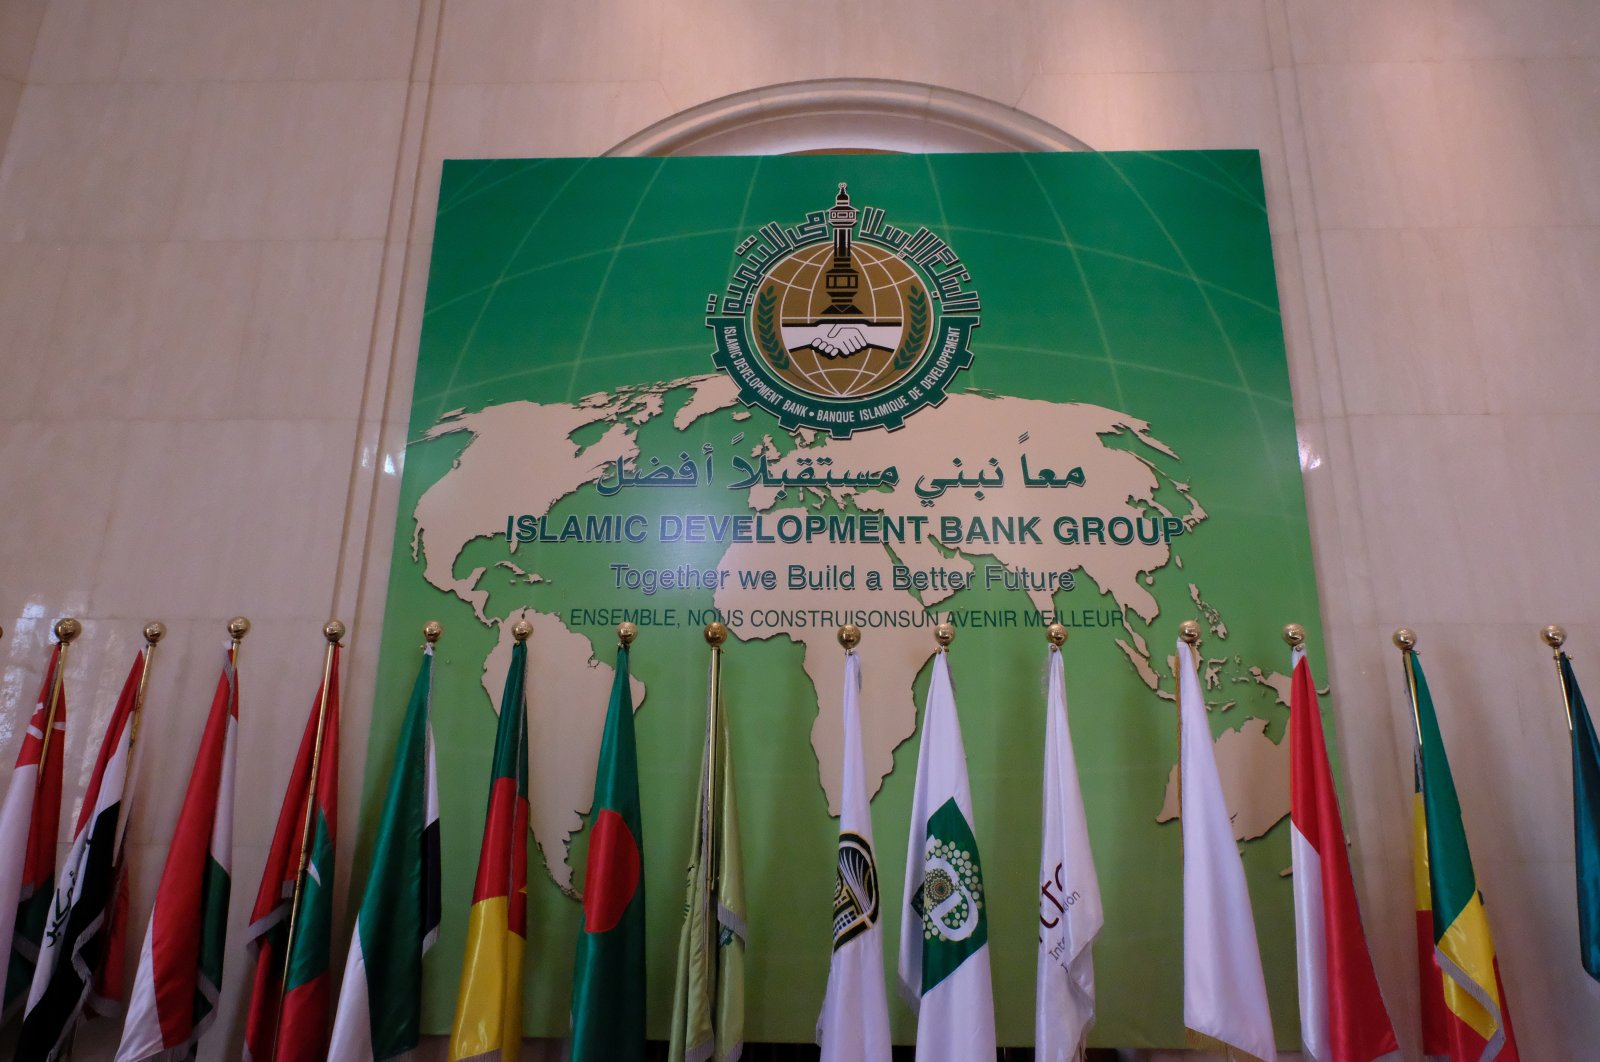 A Banner with arabic countries flags are seen at the entrance of the Islamic Development Bank Group in Jeddah, Saudi Arabia, May 31, 2018. (Reuters Photo)